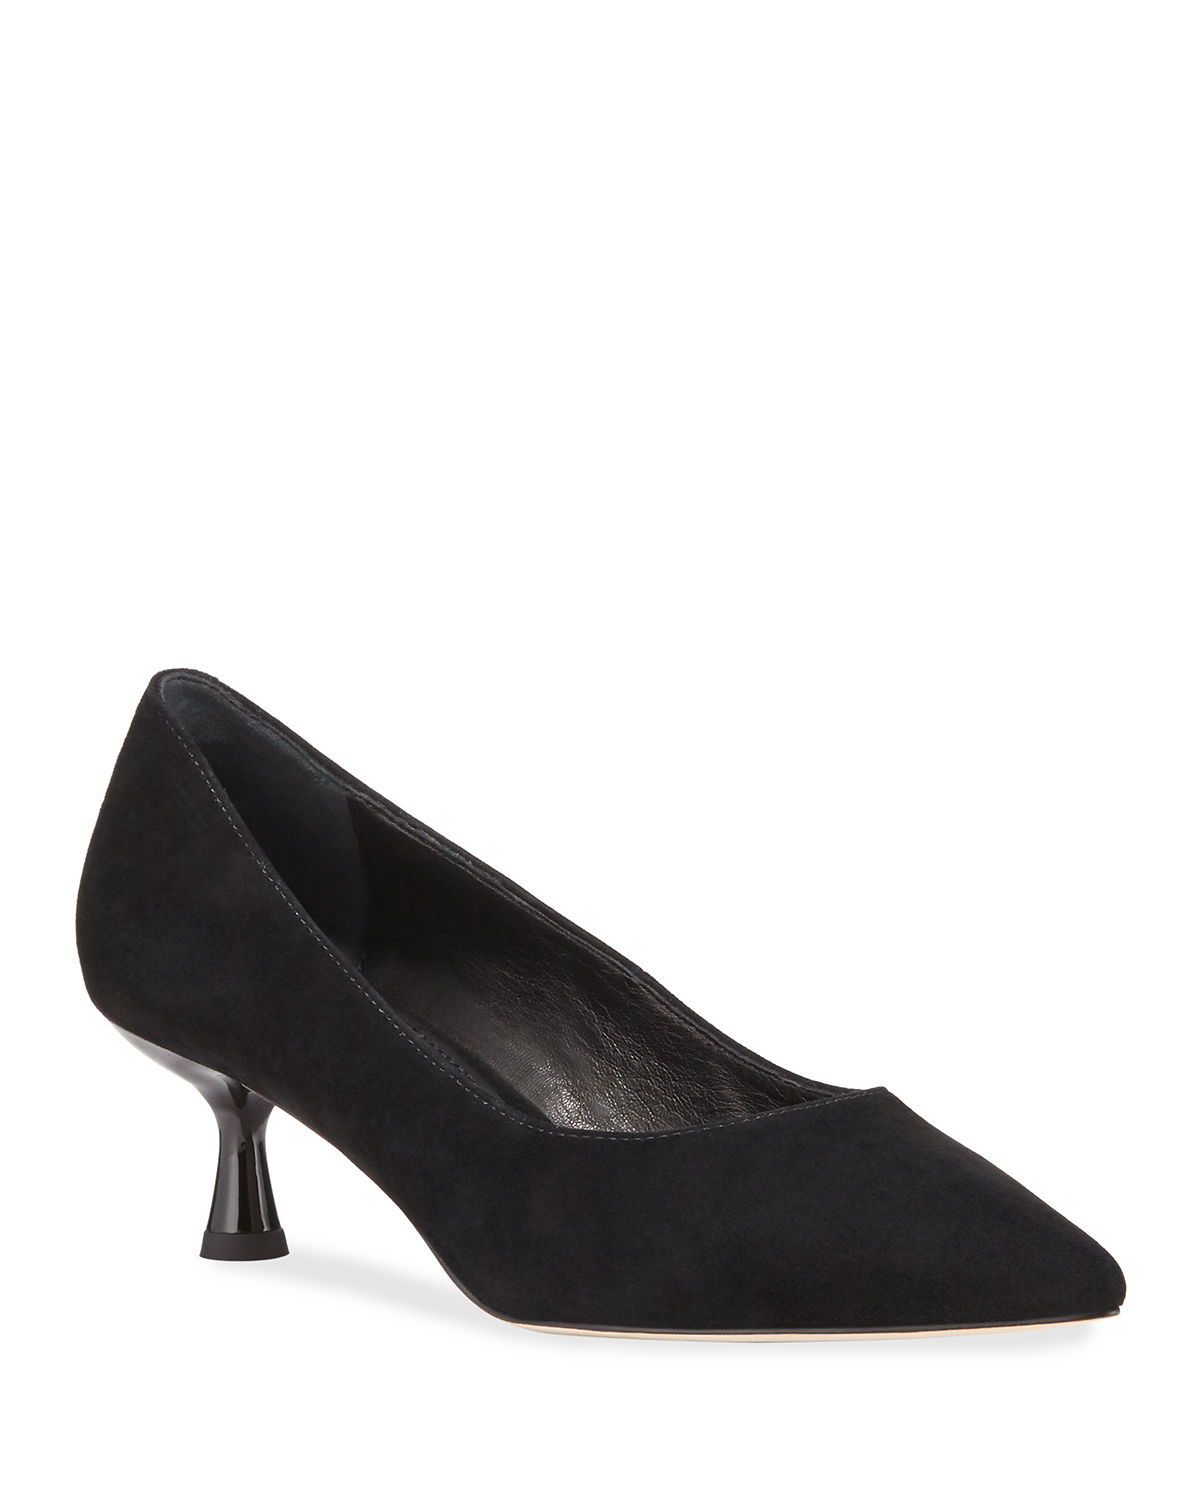 Bon Suede Kitten-Heel Pumps